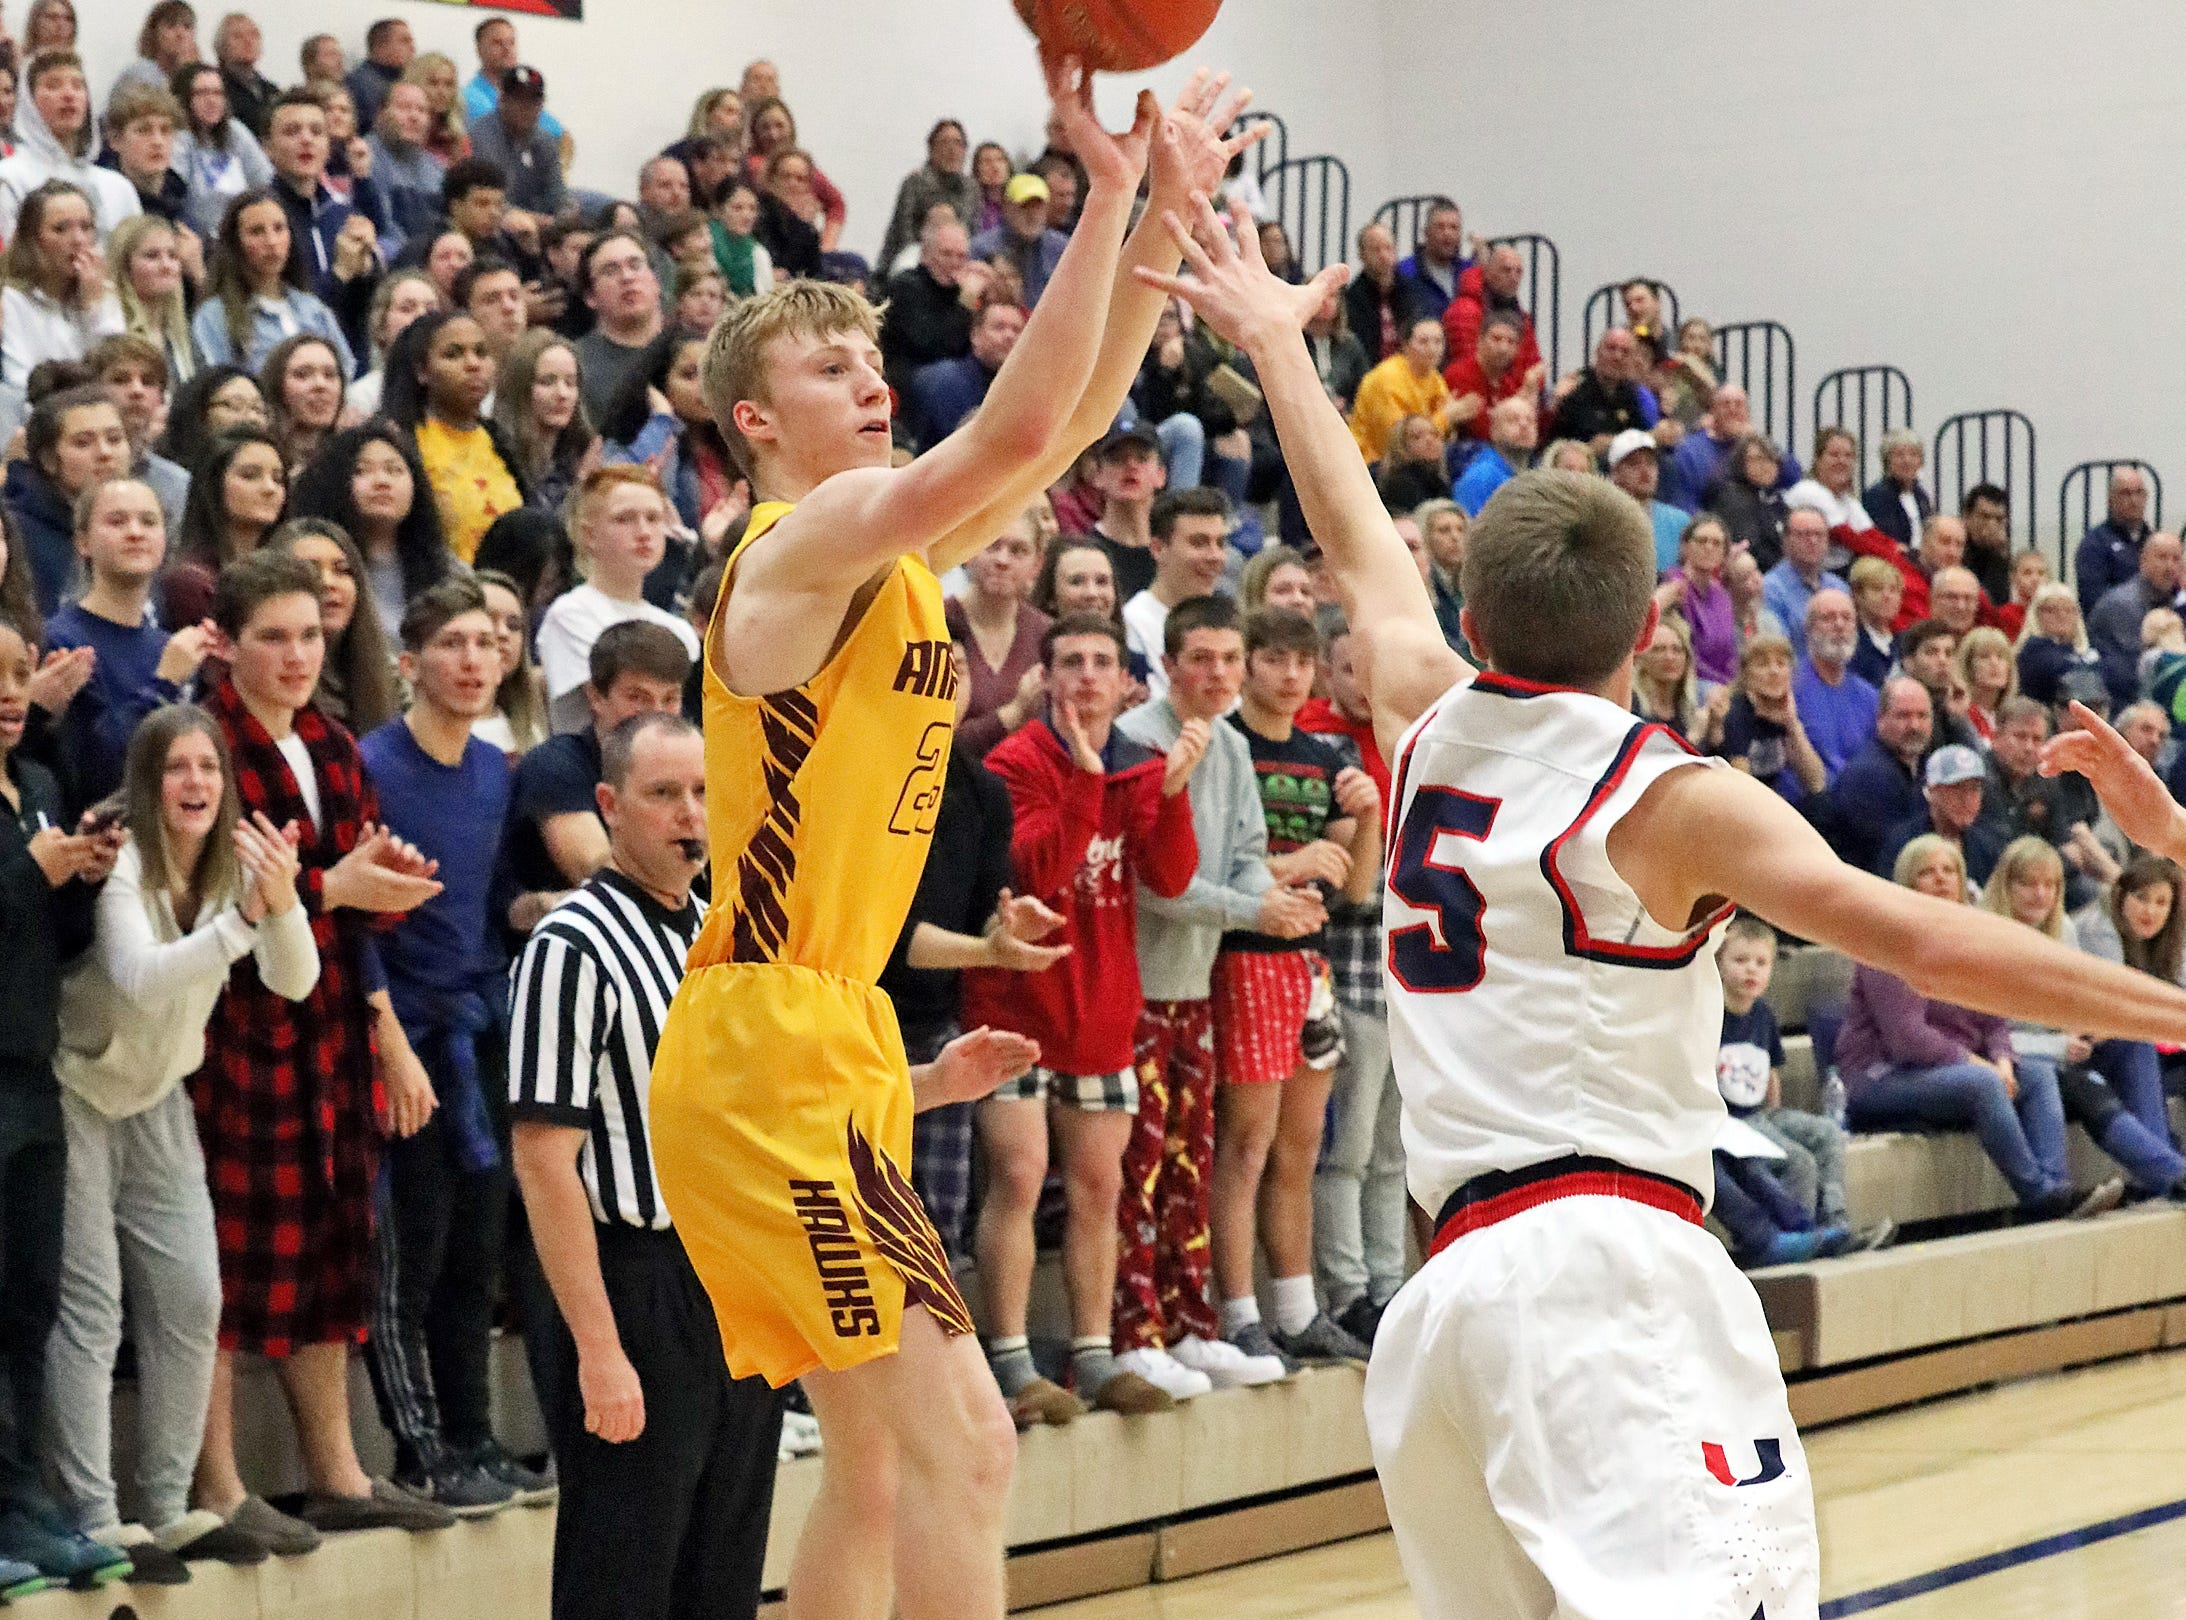 Ankeny senior sharpshooter Dillon Carlson hits another 3-pointer as the Ankeny Hawks compete against the Urbandale J-Hawks in high school basketball on Friday, Dec. 14, 2018 at Urbandale High School. Ankeny won 62 to 52 to remain undefeated at 6-0.